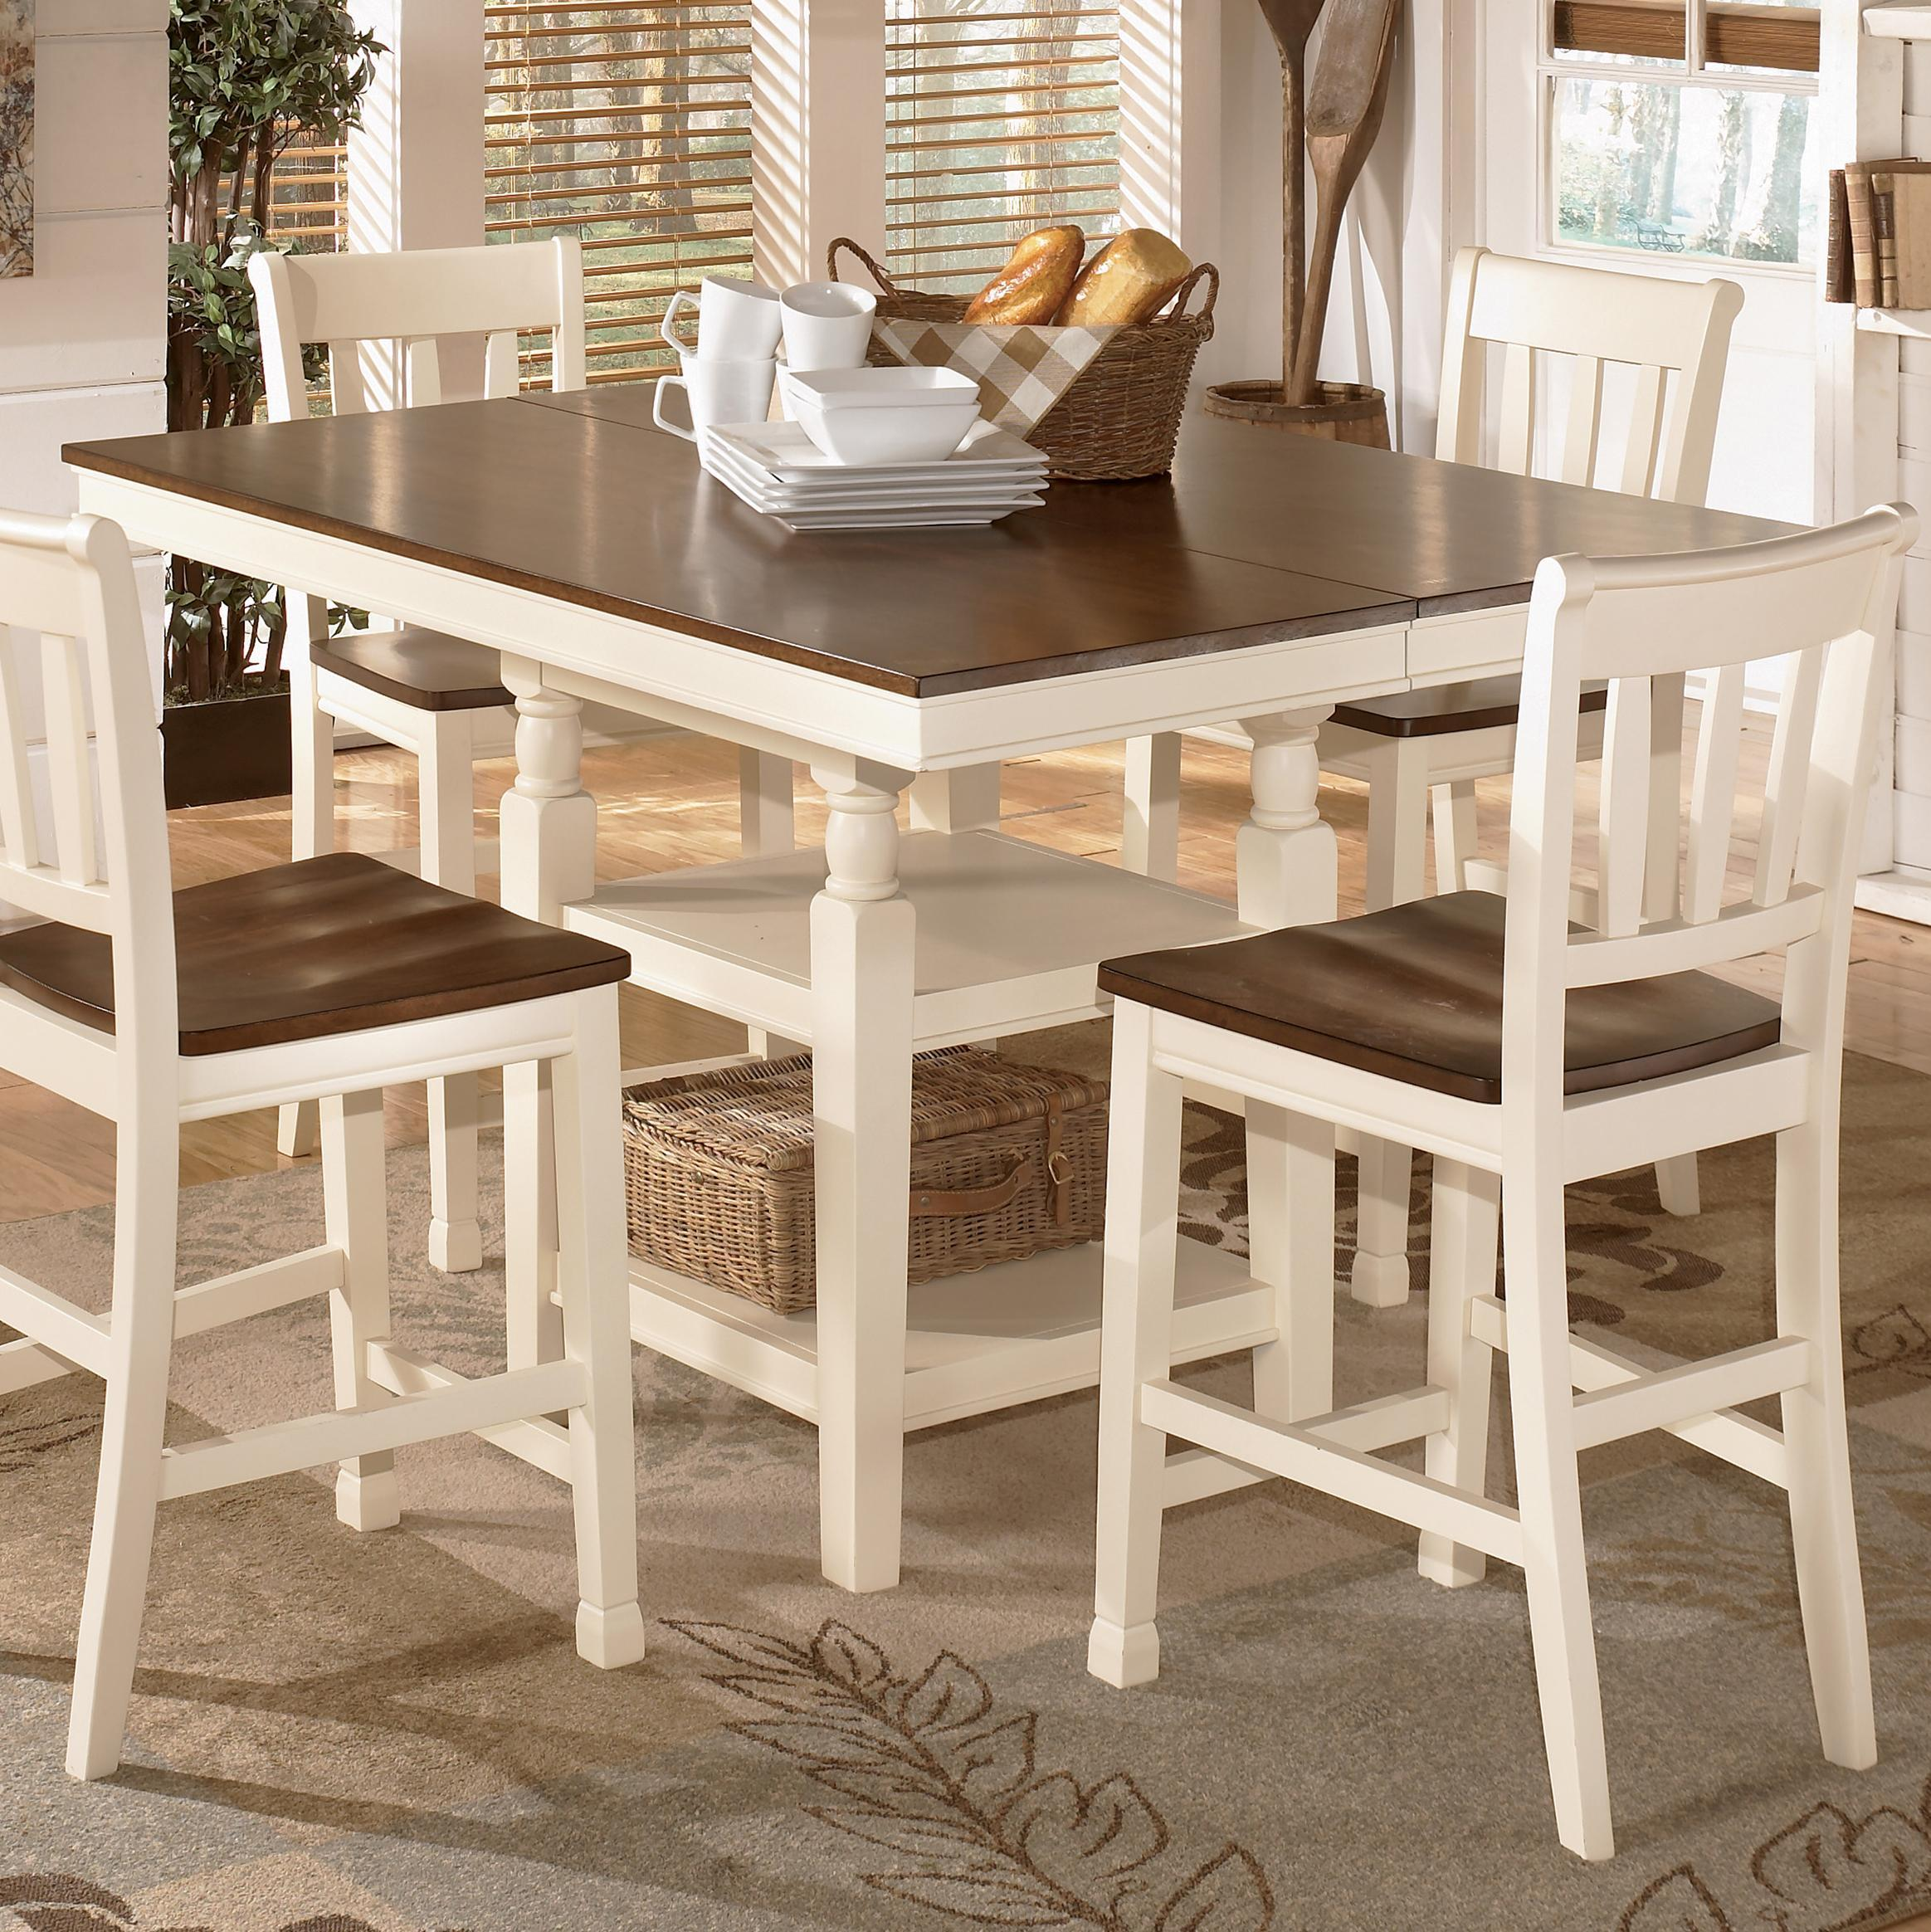 Home Whitesburg Square Dining Room Counter Extension Table With